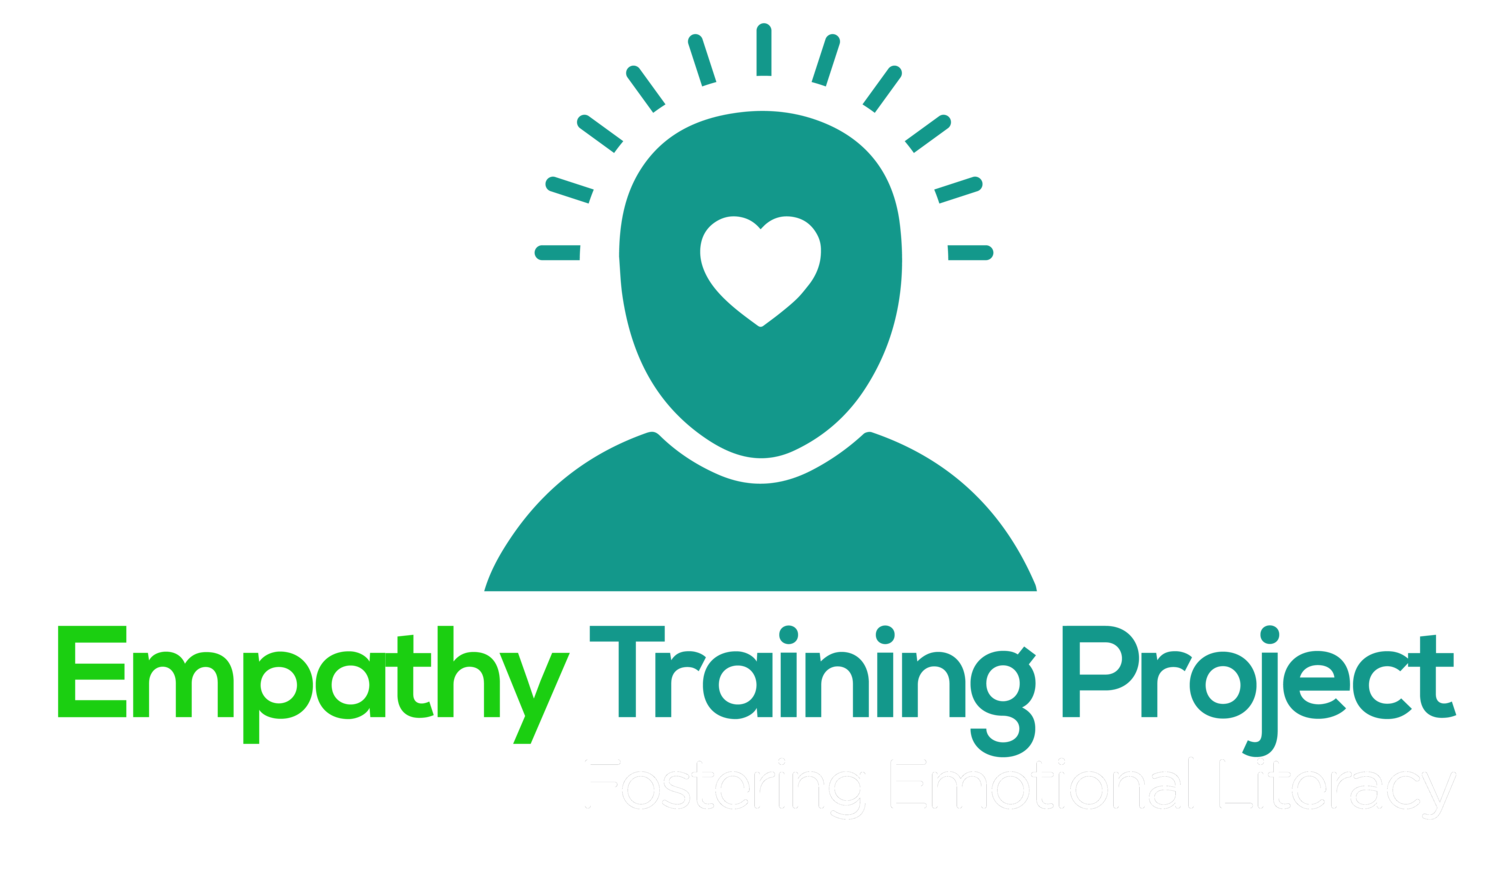 Empathy Training Project